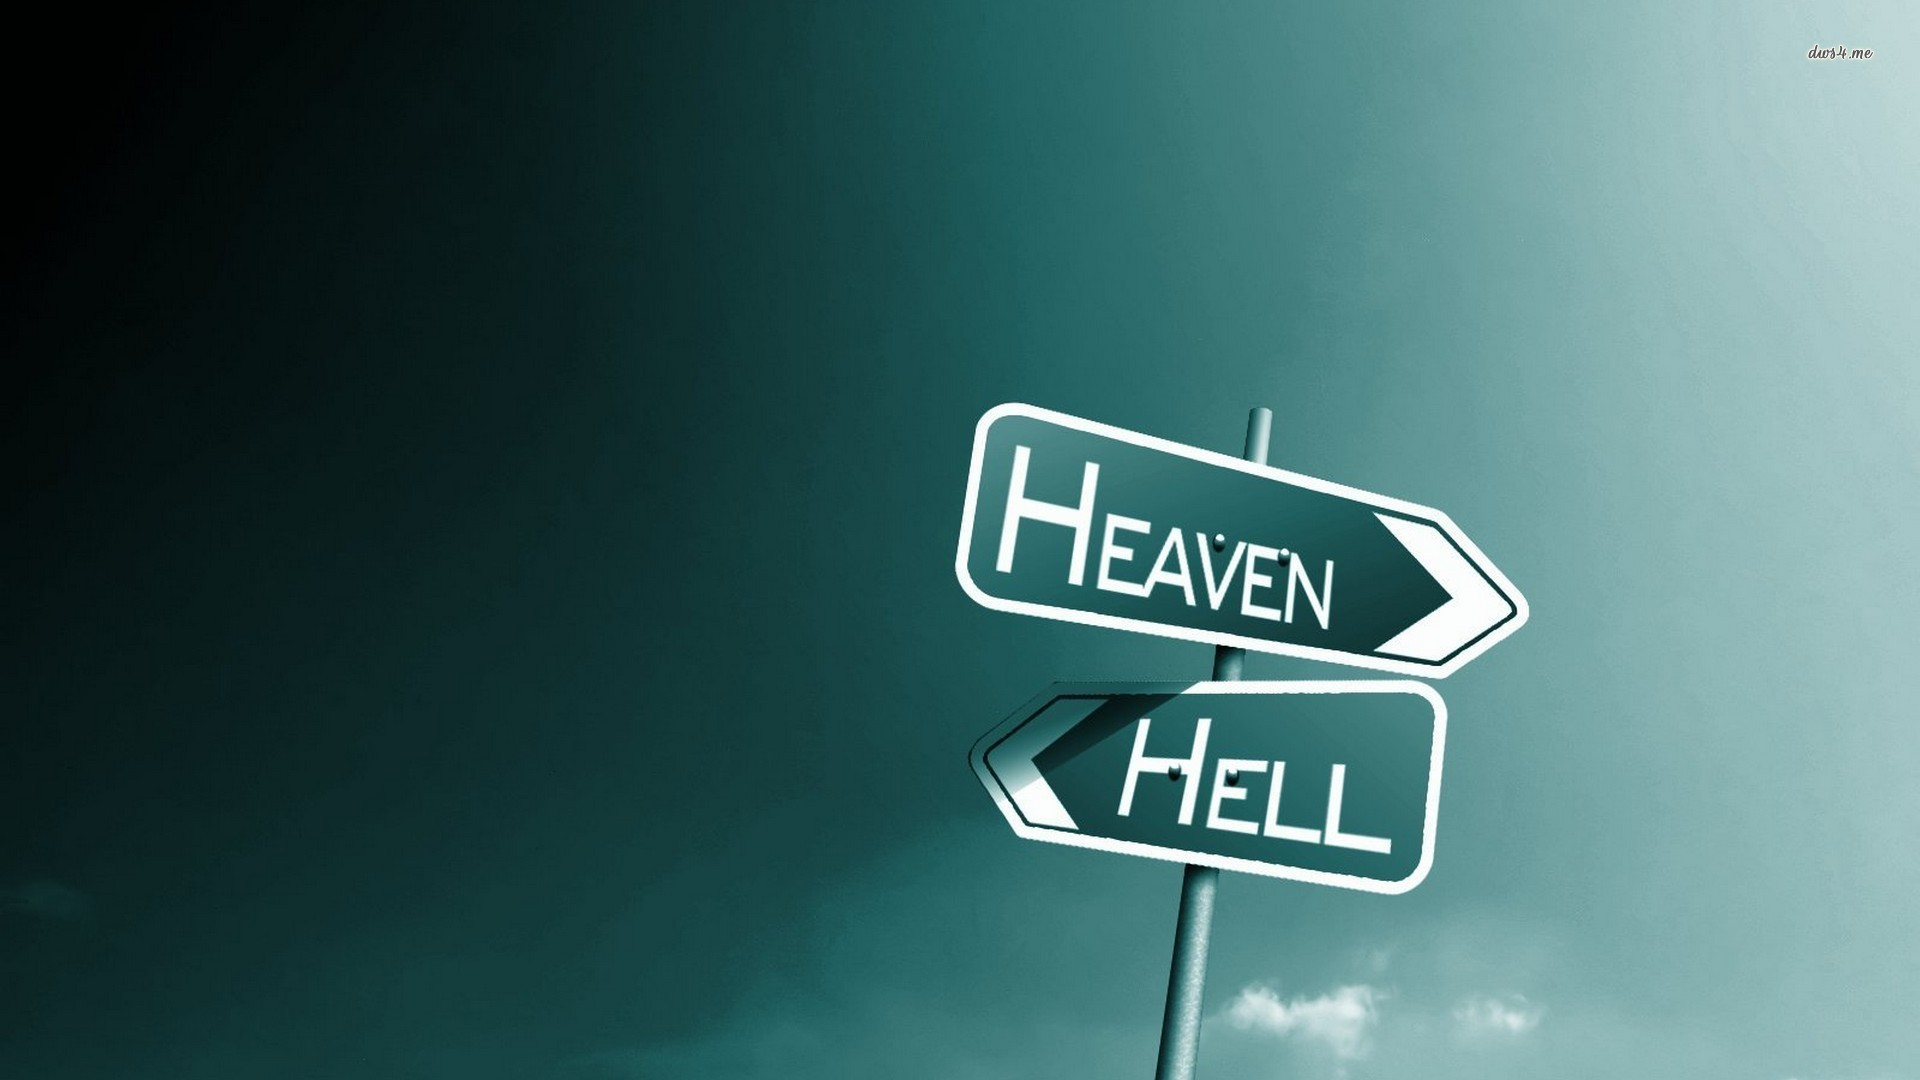 Heaven Or Hell wallpapers HD free – 265133